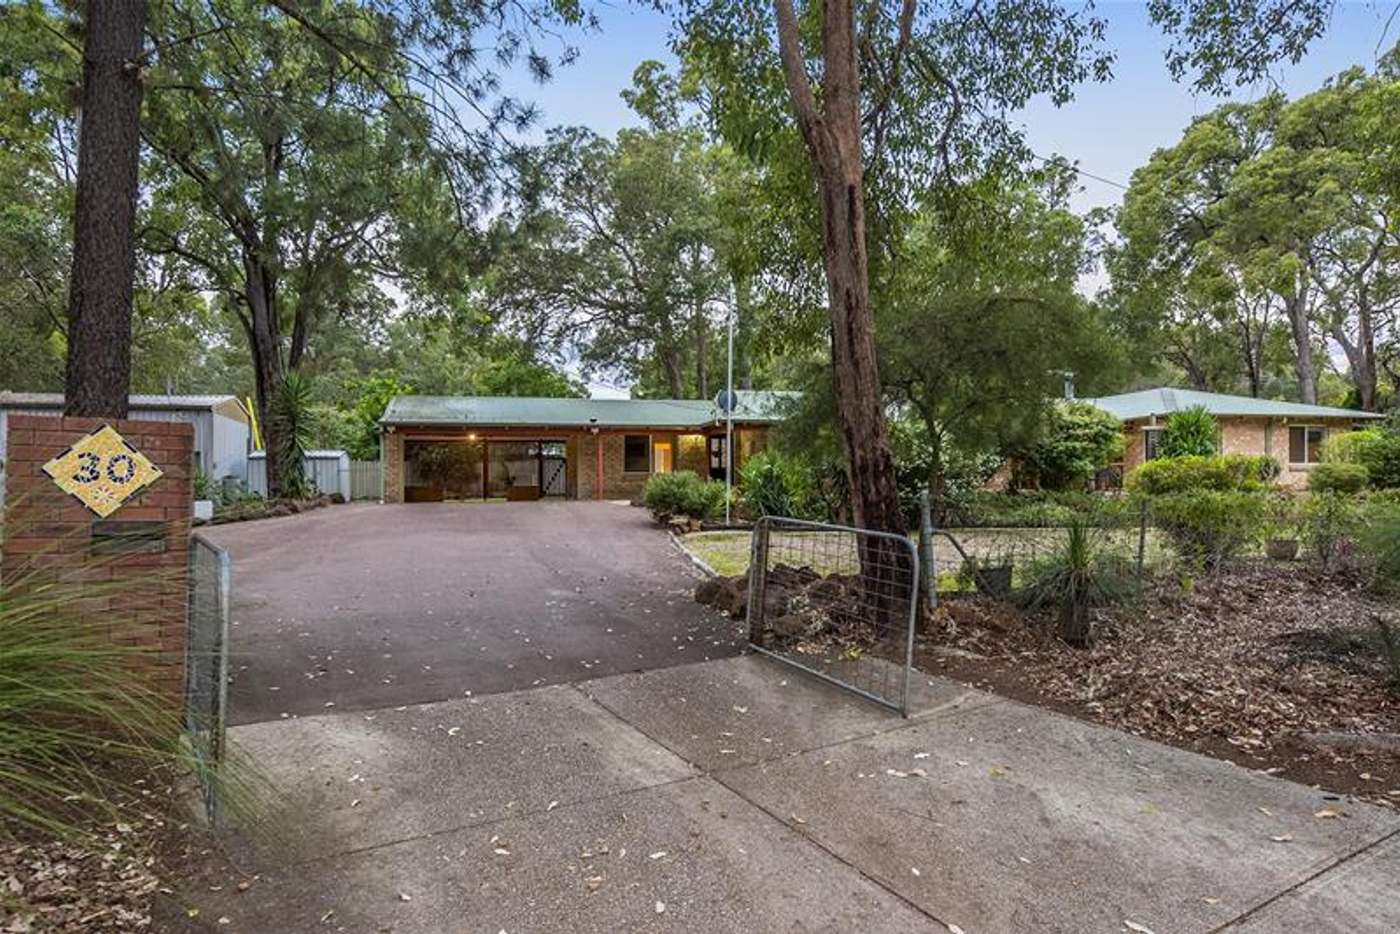 Main view of Homely house listing, 30 Tyers Road, Roleystone WA 6111